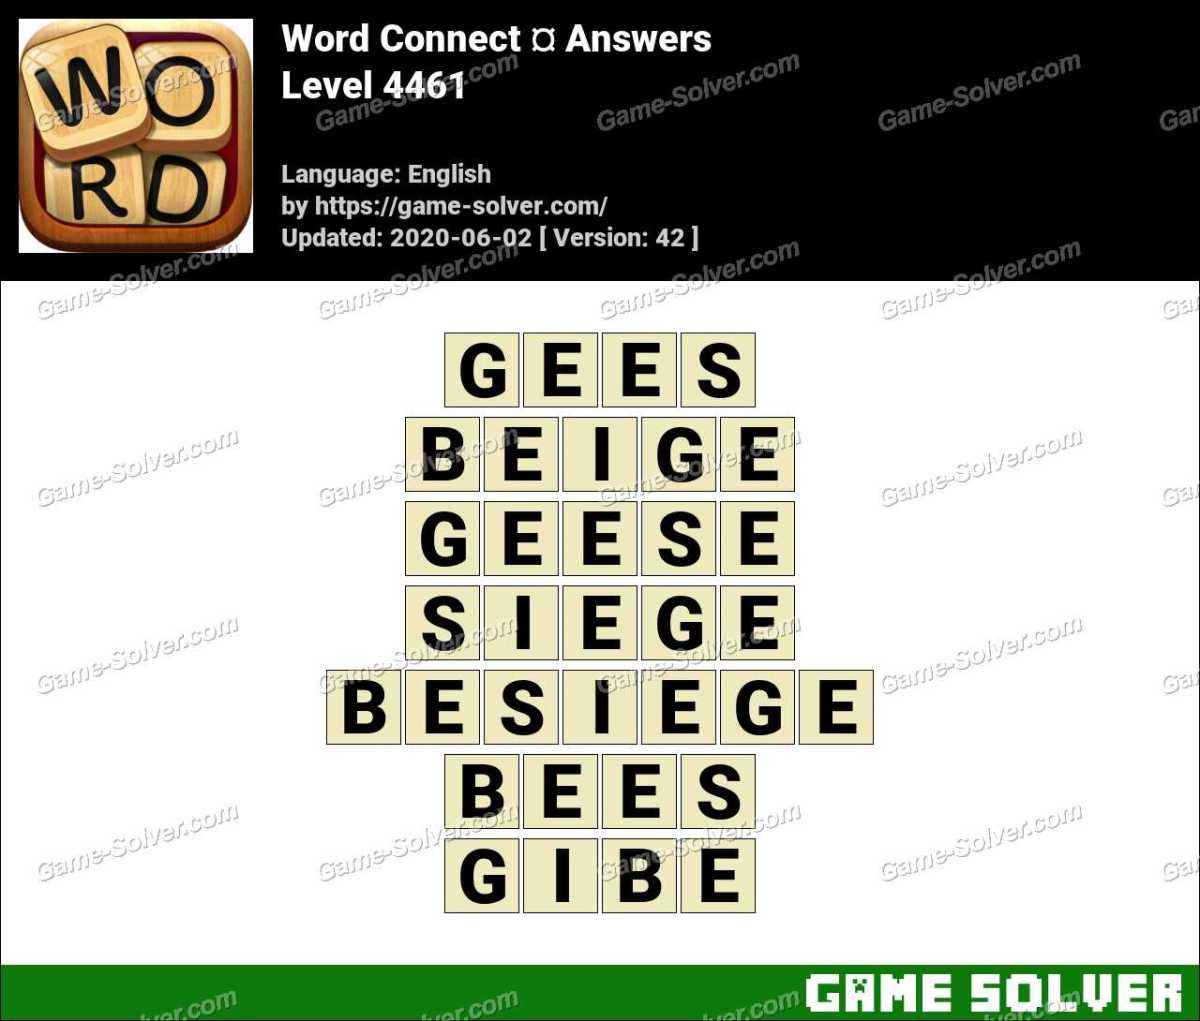 Word Connect Level 4461 Answers